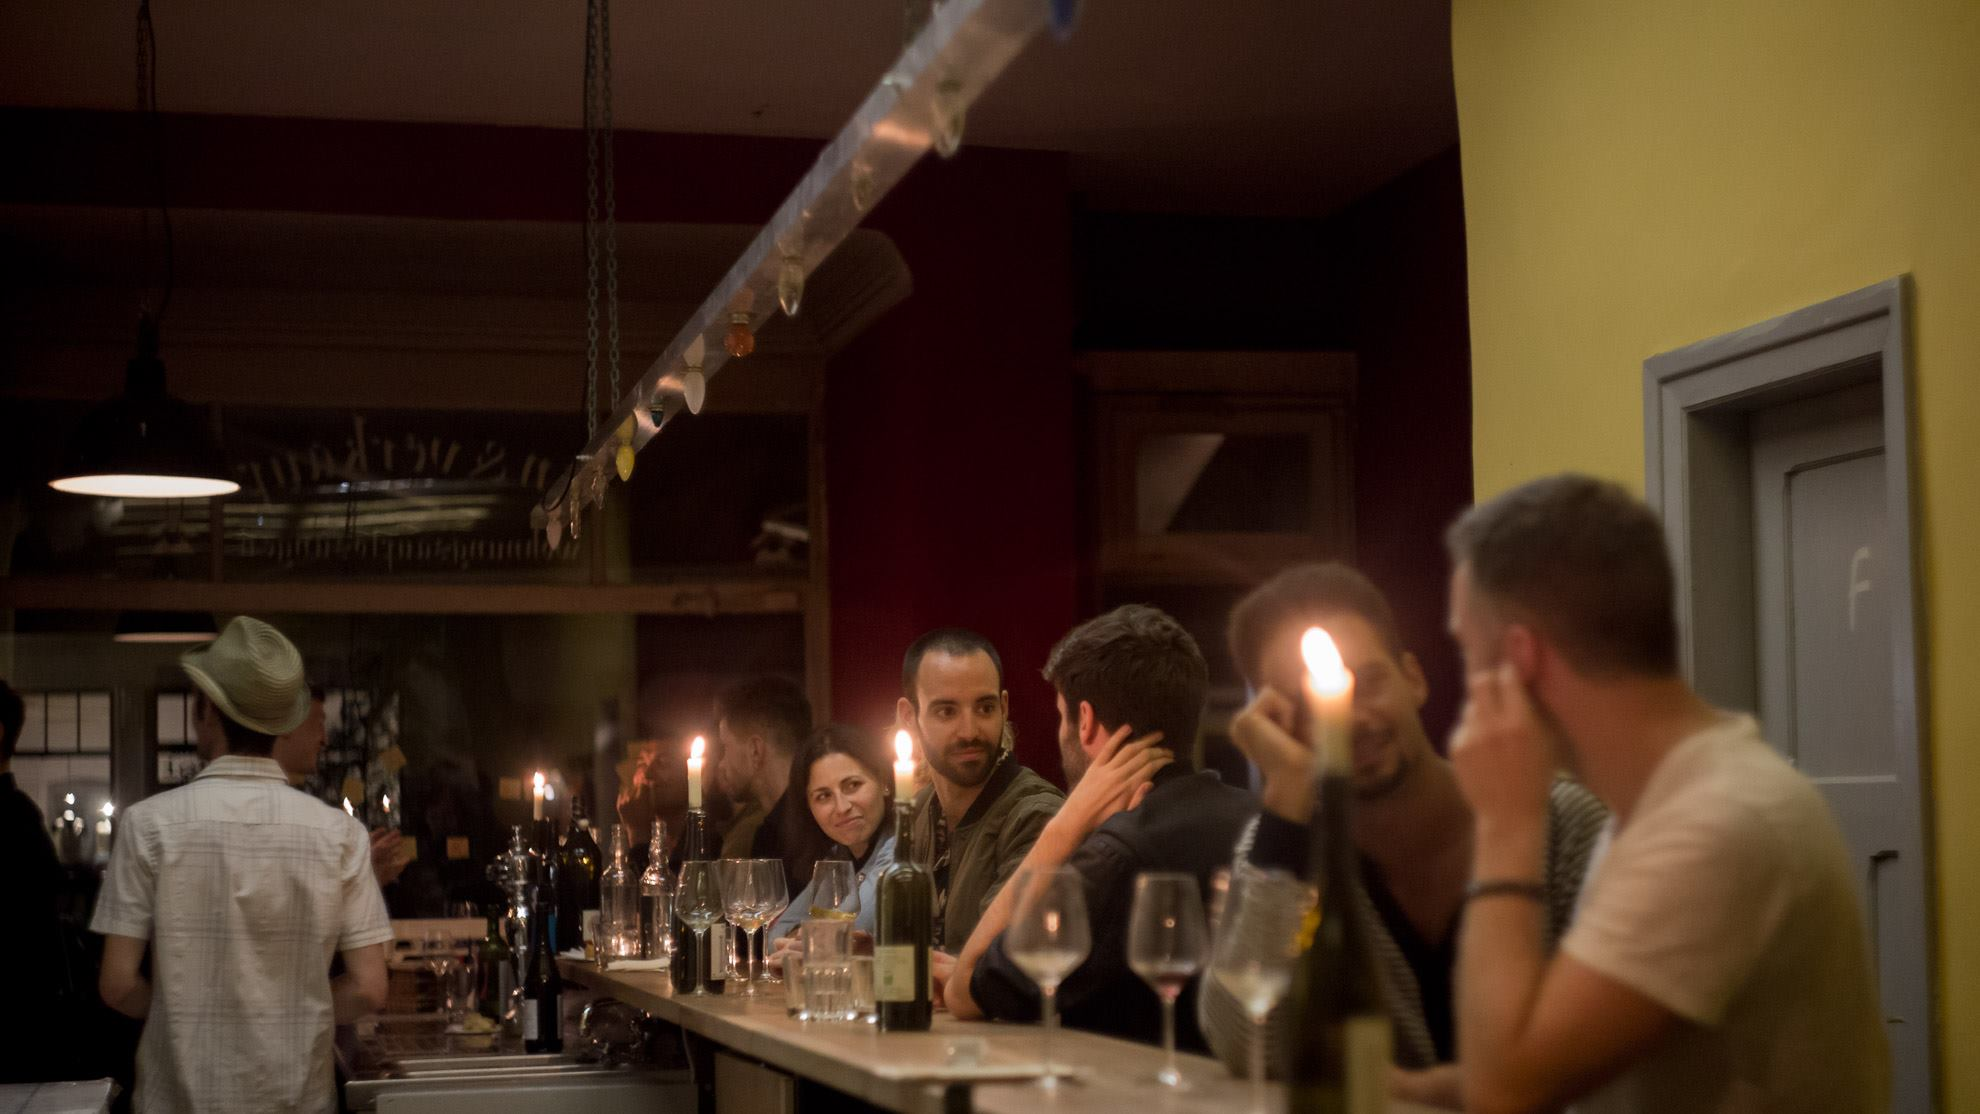 A crowd sitting at bar with wine glasses, bottles and candles at Naturales Weinbar Berlin